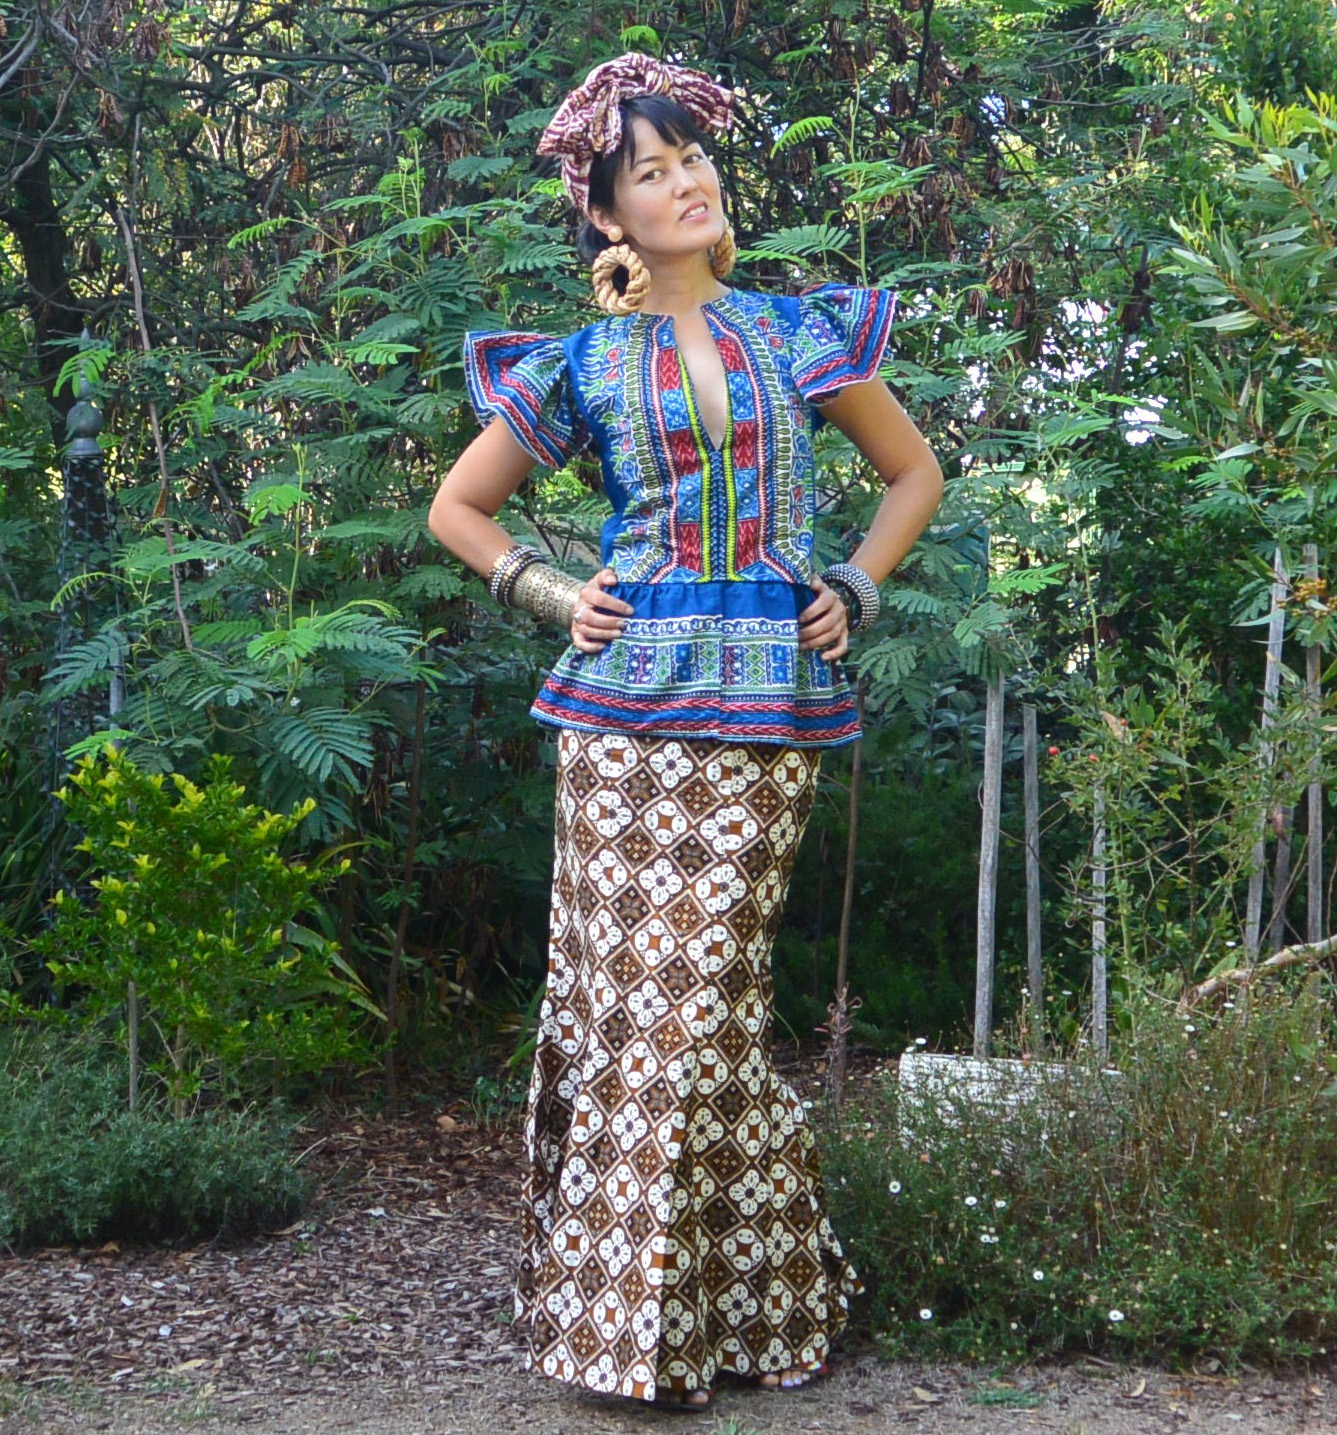 Leeyong Soo wears one of the five garments she created from one caftan for The Slow Clothing Project.